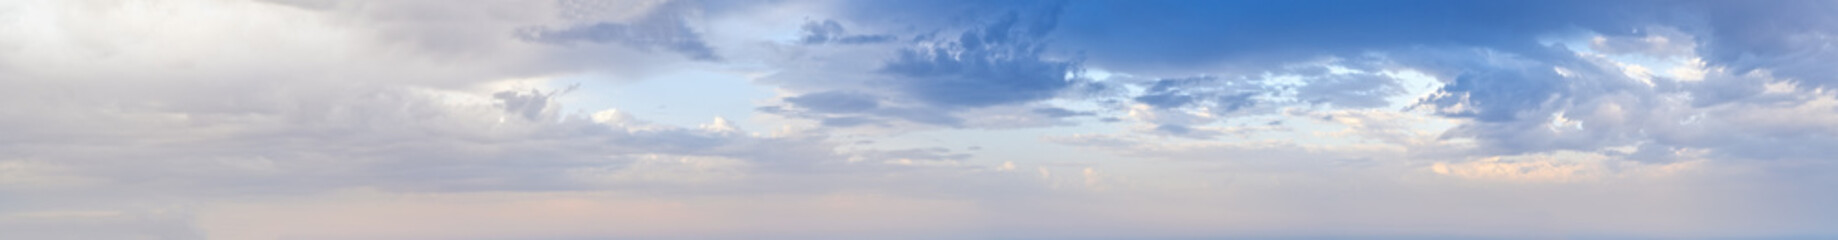 Blue morning sky with clouds (wide high resolution background panorama).